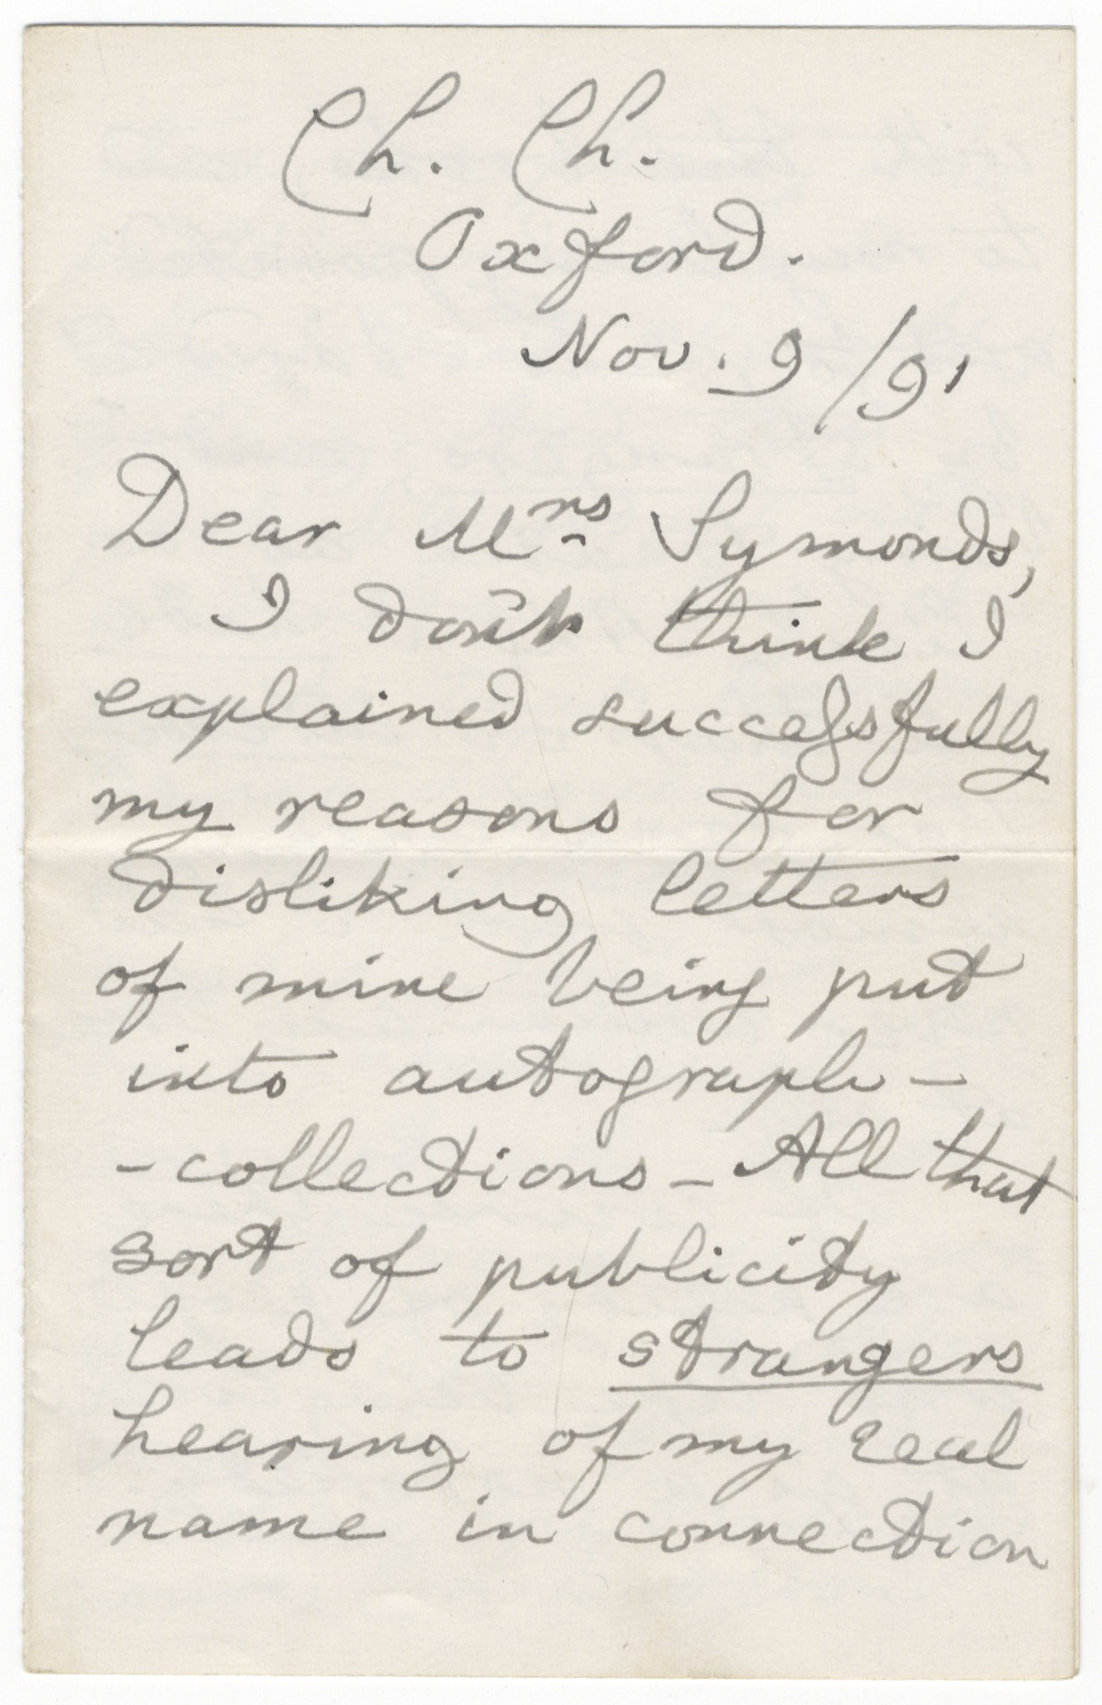 Lewis Carroll letter first page